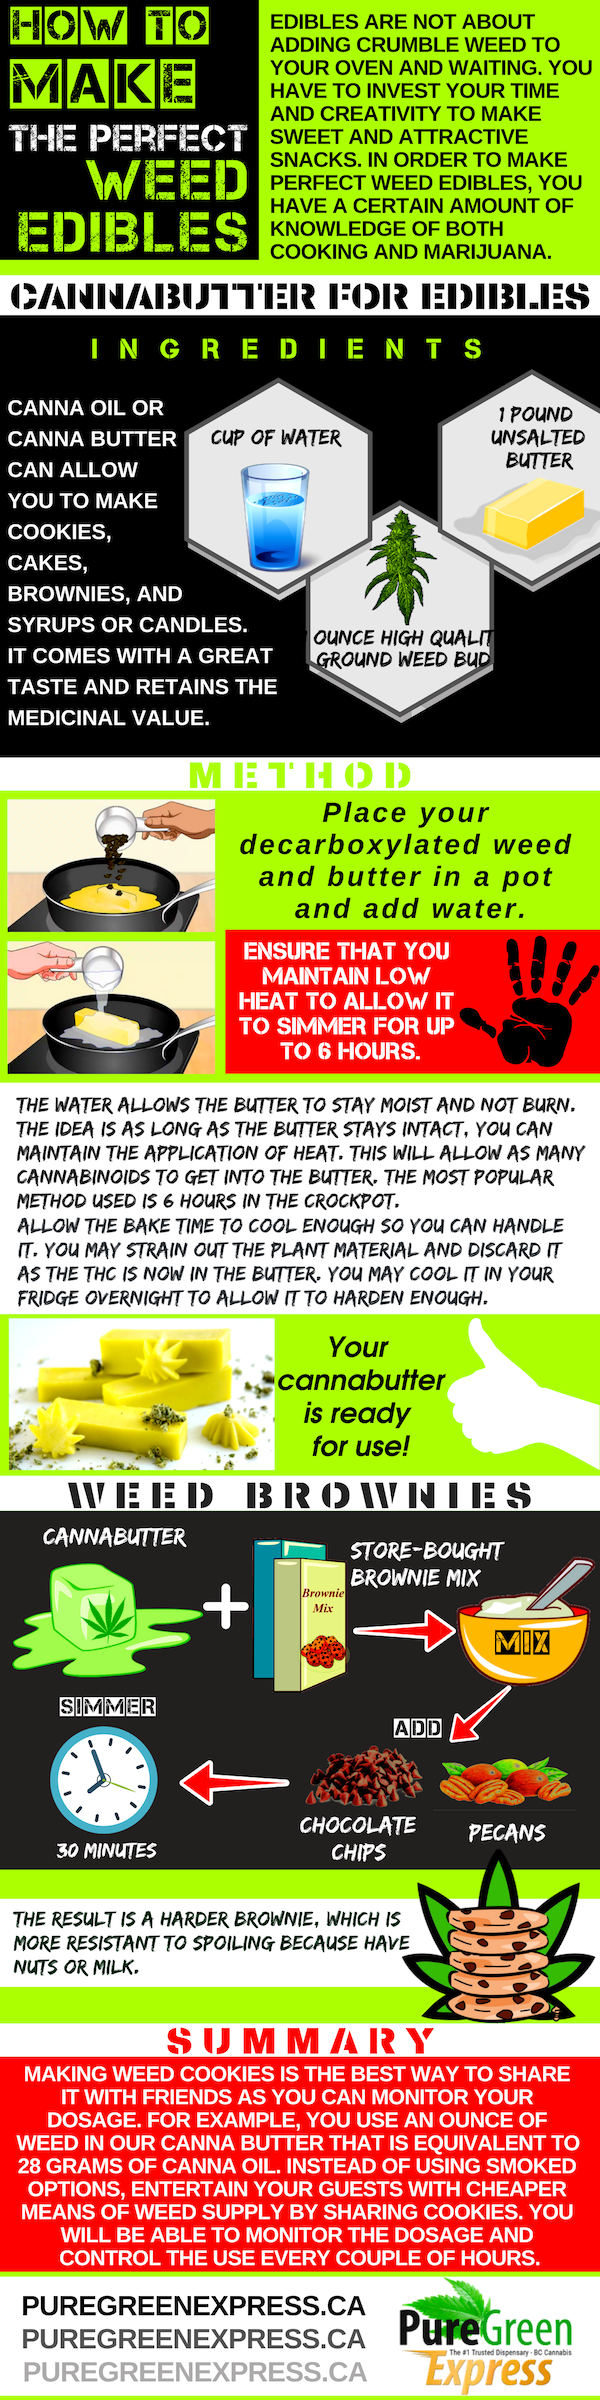 How to Make the Perfect Weed Edibles